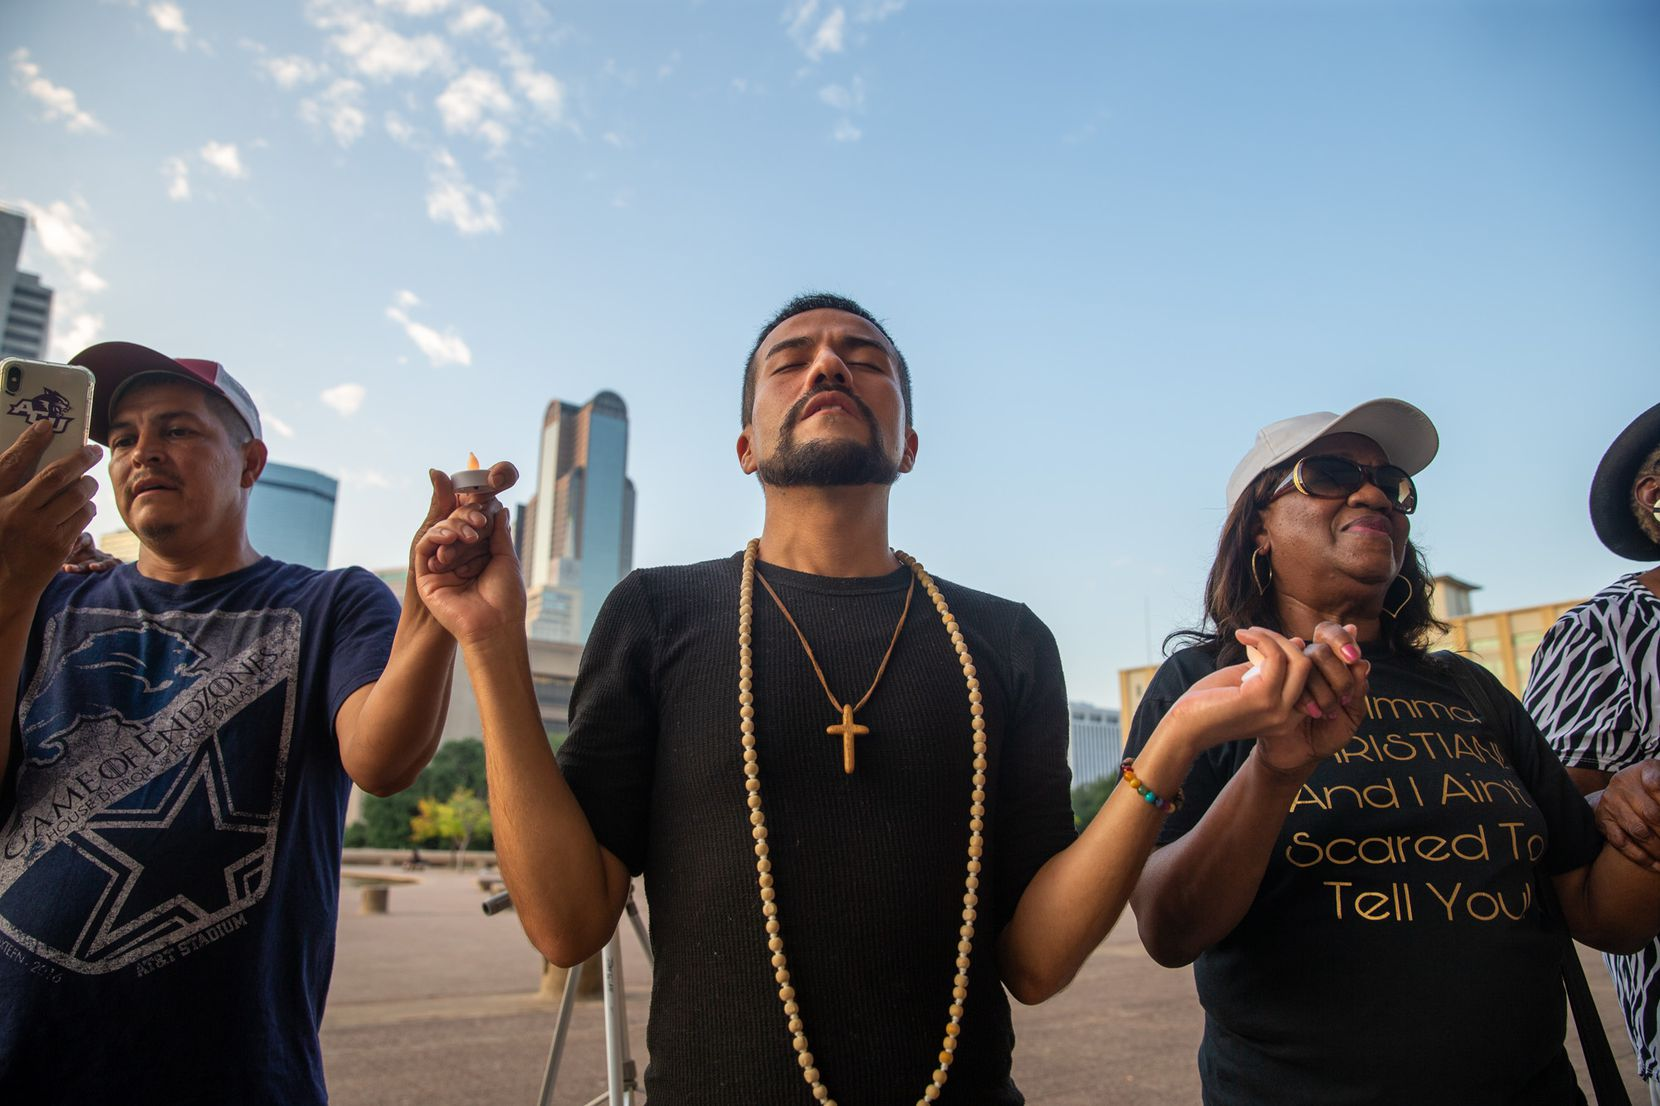 El Paso native Jaime Morales (center) sings with Abel Lopez (left) and Eva Miles (right) as they gather to honor the victims of Saturday's mass shooting in El Paso during a candlelight vigil outside Dallas City Hall in Dallas on Sunday, Aug. 4, 2019.